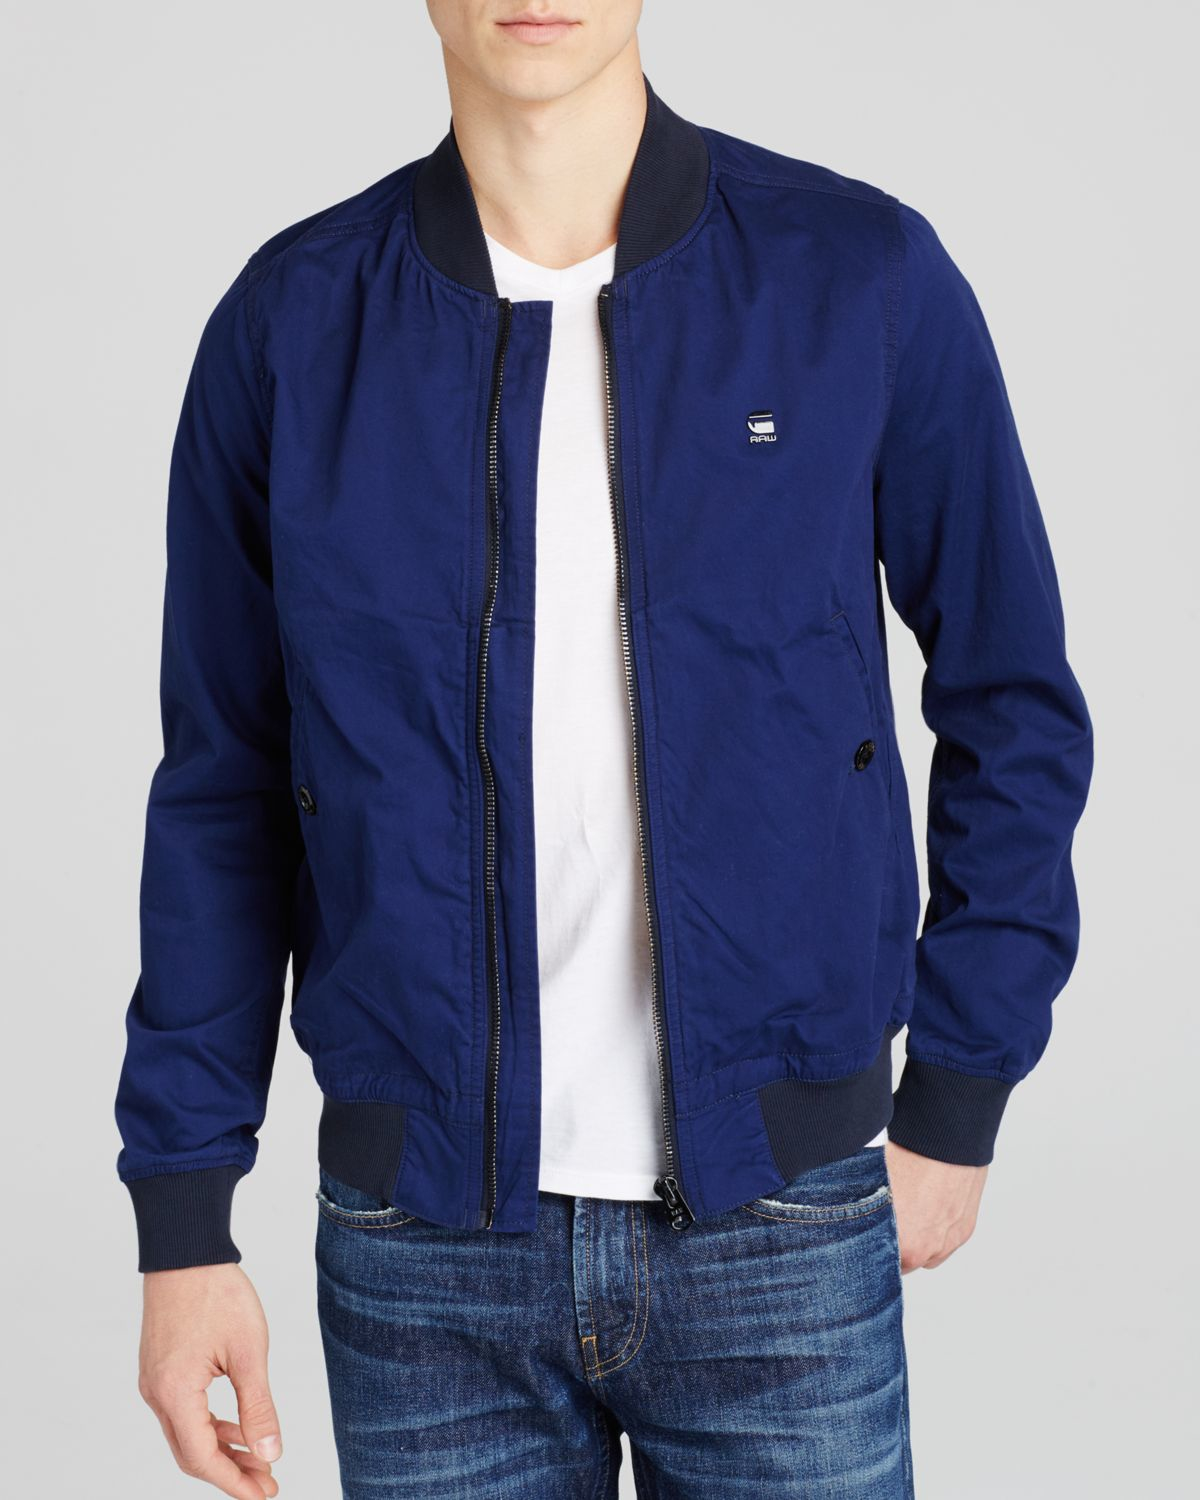 g star raw shattor bomber jacket in blue for men lyst. Black Bedroom Furniture Sets. Home Design Ideas